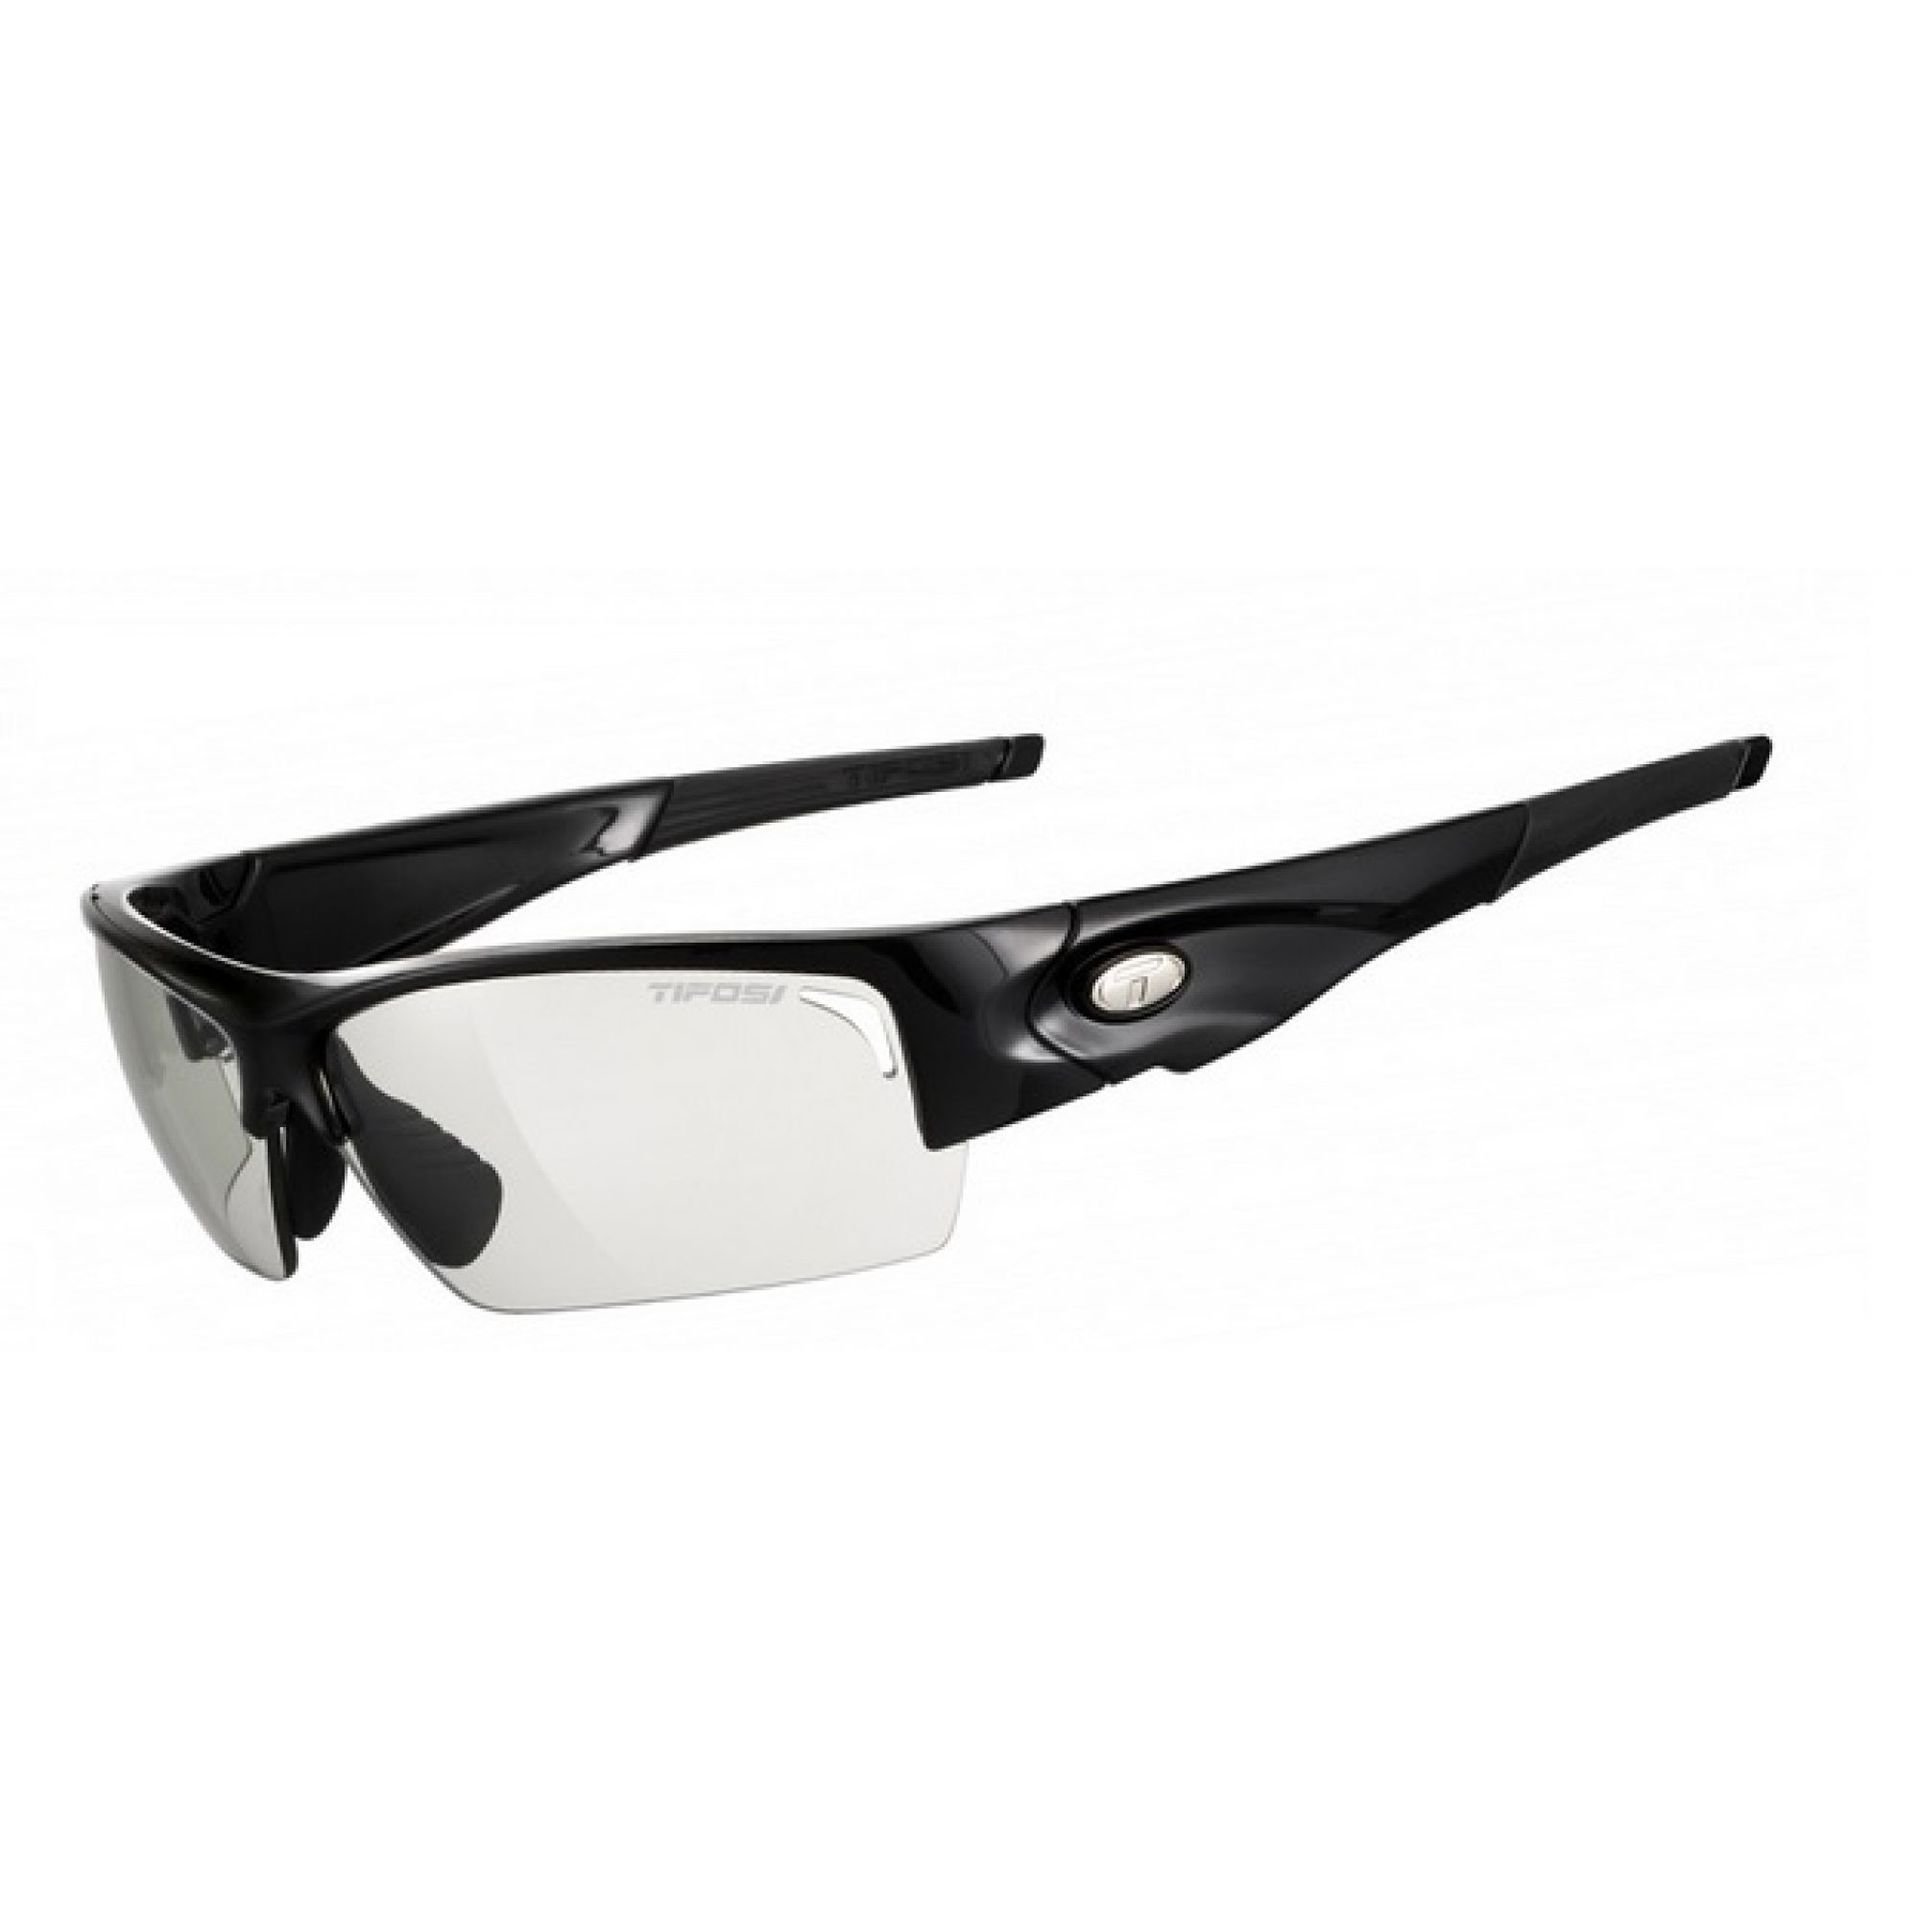 Okulary Tifosi Lore gloss black